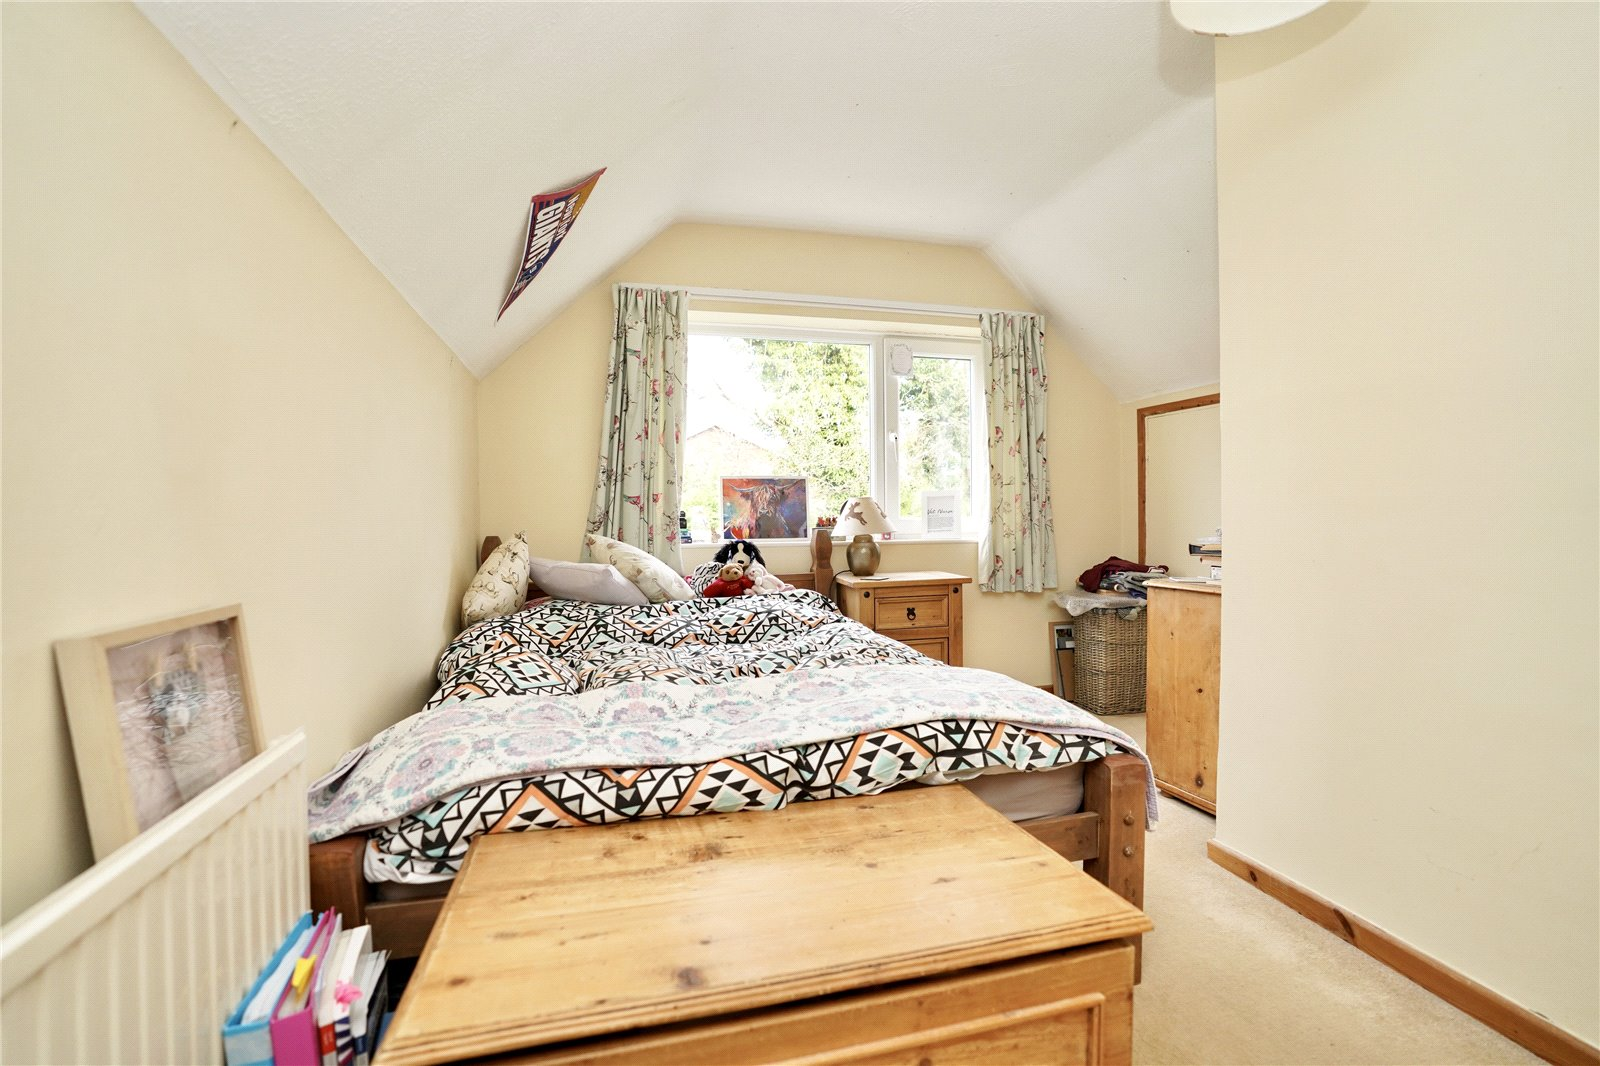 3 bed house for sale in Hemingford Grey, PE28 9BS 11